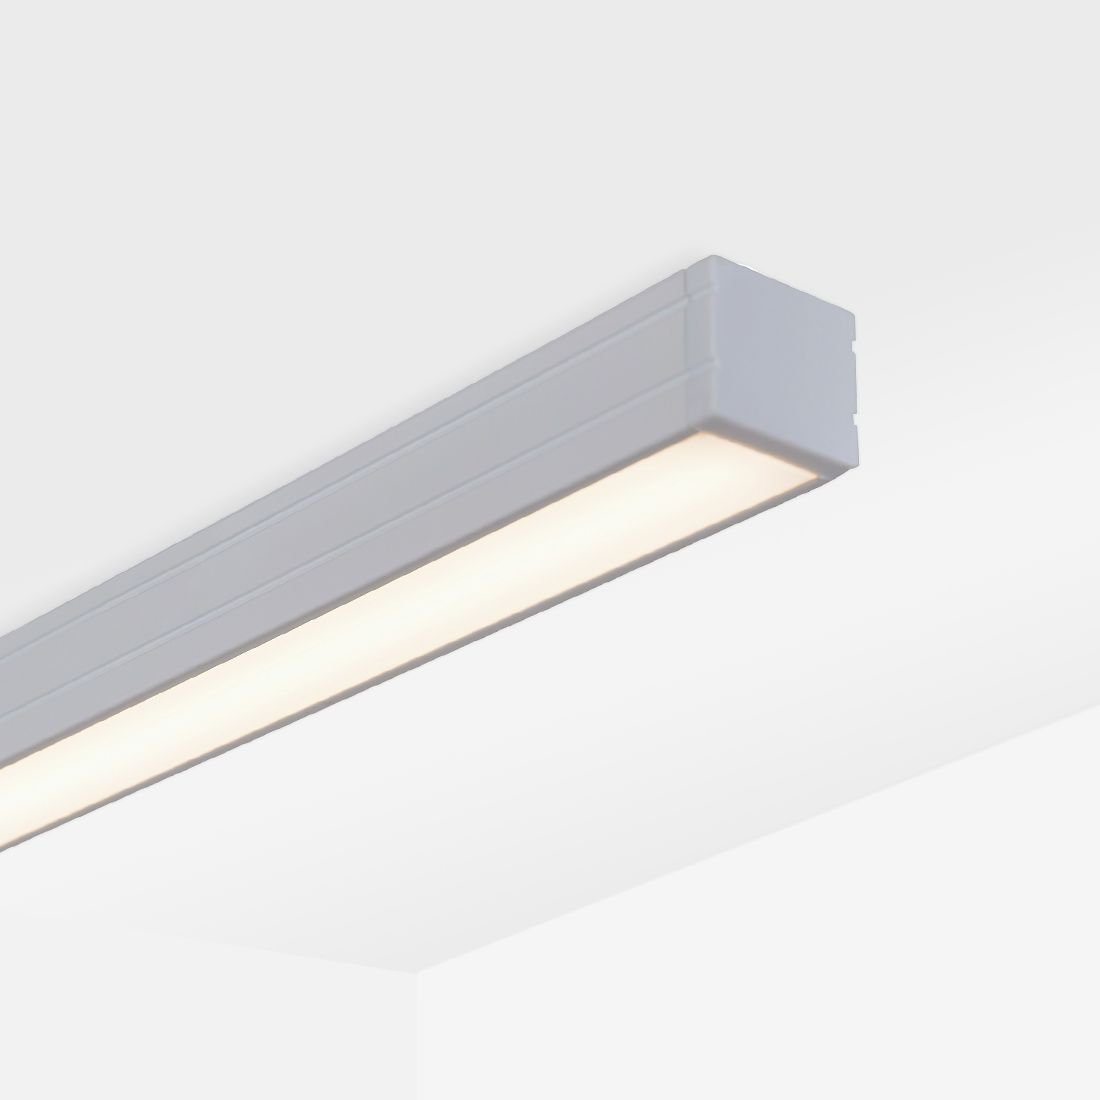 Alcon 14220 Linear 120 Volt Led Cove Lightbar Architectural Lighting